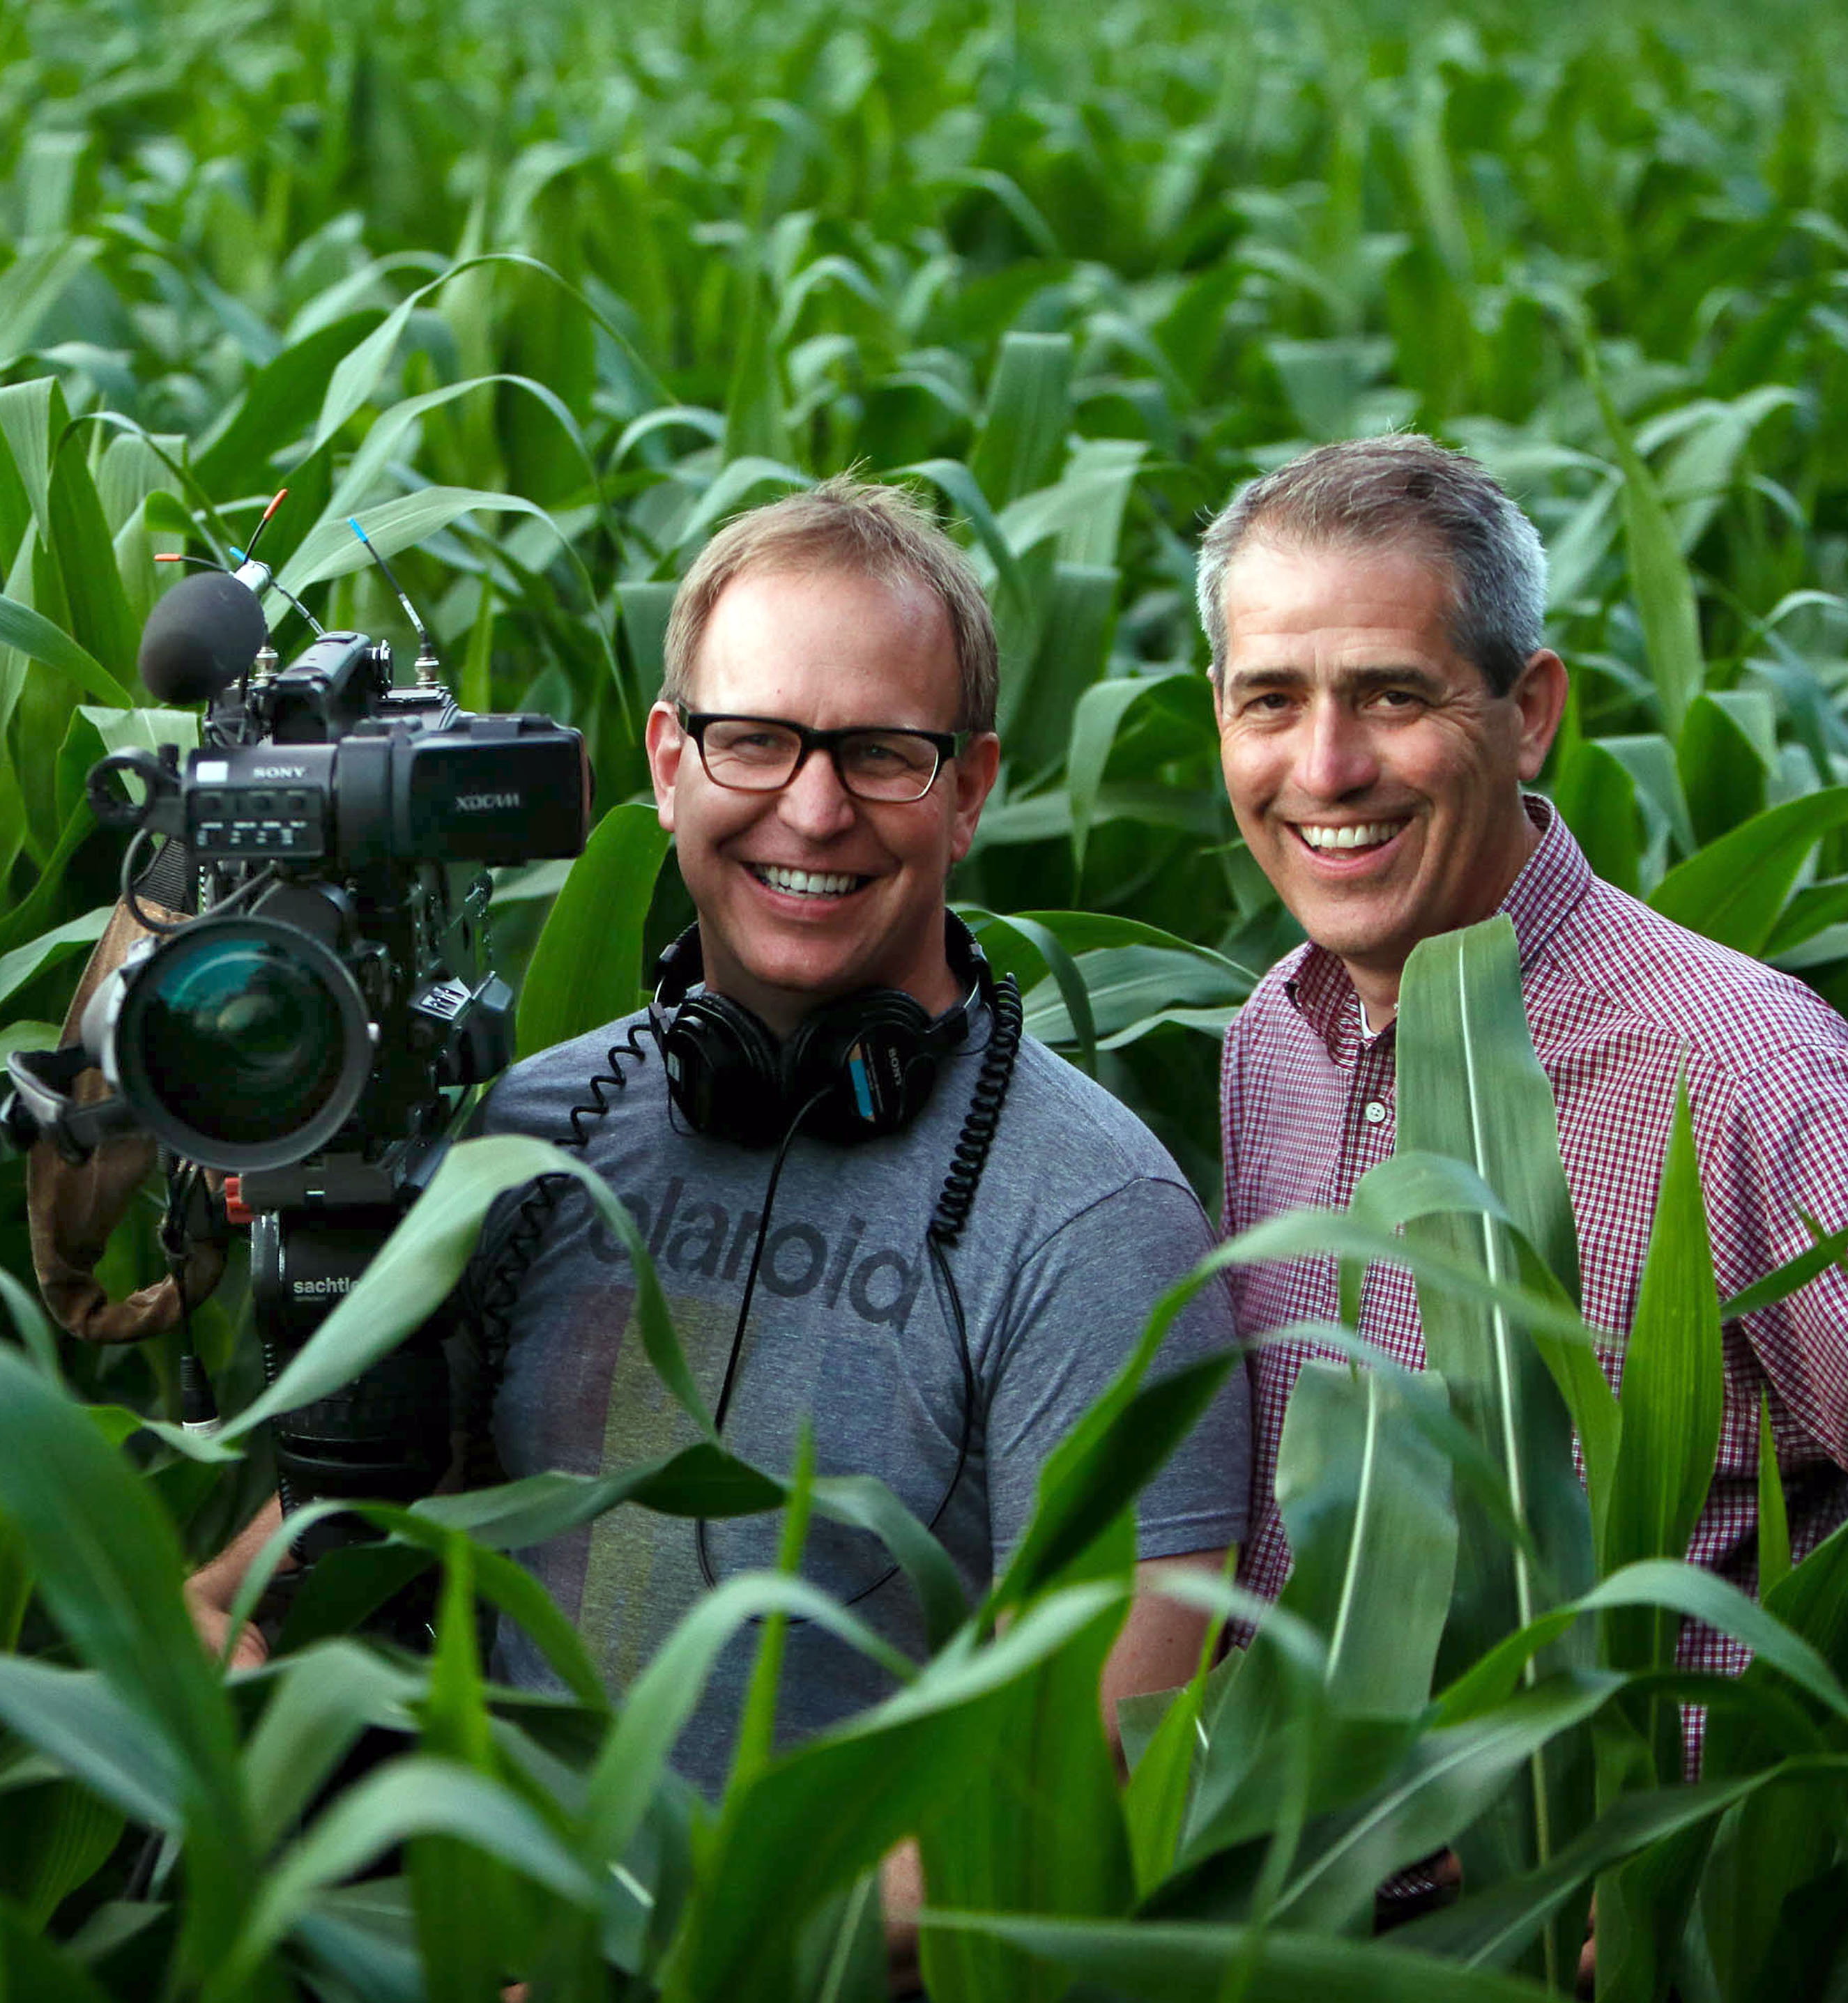 The duo of photojournalist Jonathan Malat, formerly of KARE11-TV in Minneapolis who is now at TV2 in Denmark, and reporter Boyd Huppert of KARE11-TV, are this year's Joseph A. Sprague Memorial Award recipients. Photograph by Ben Garvin